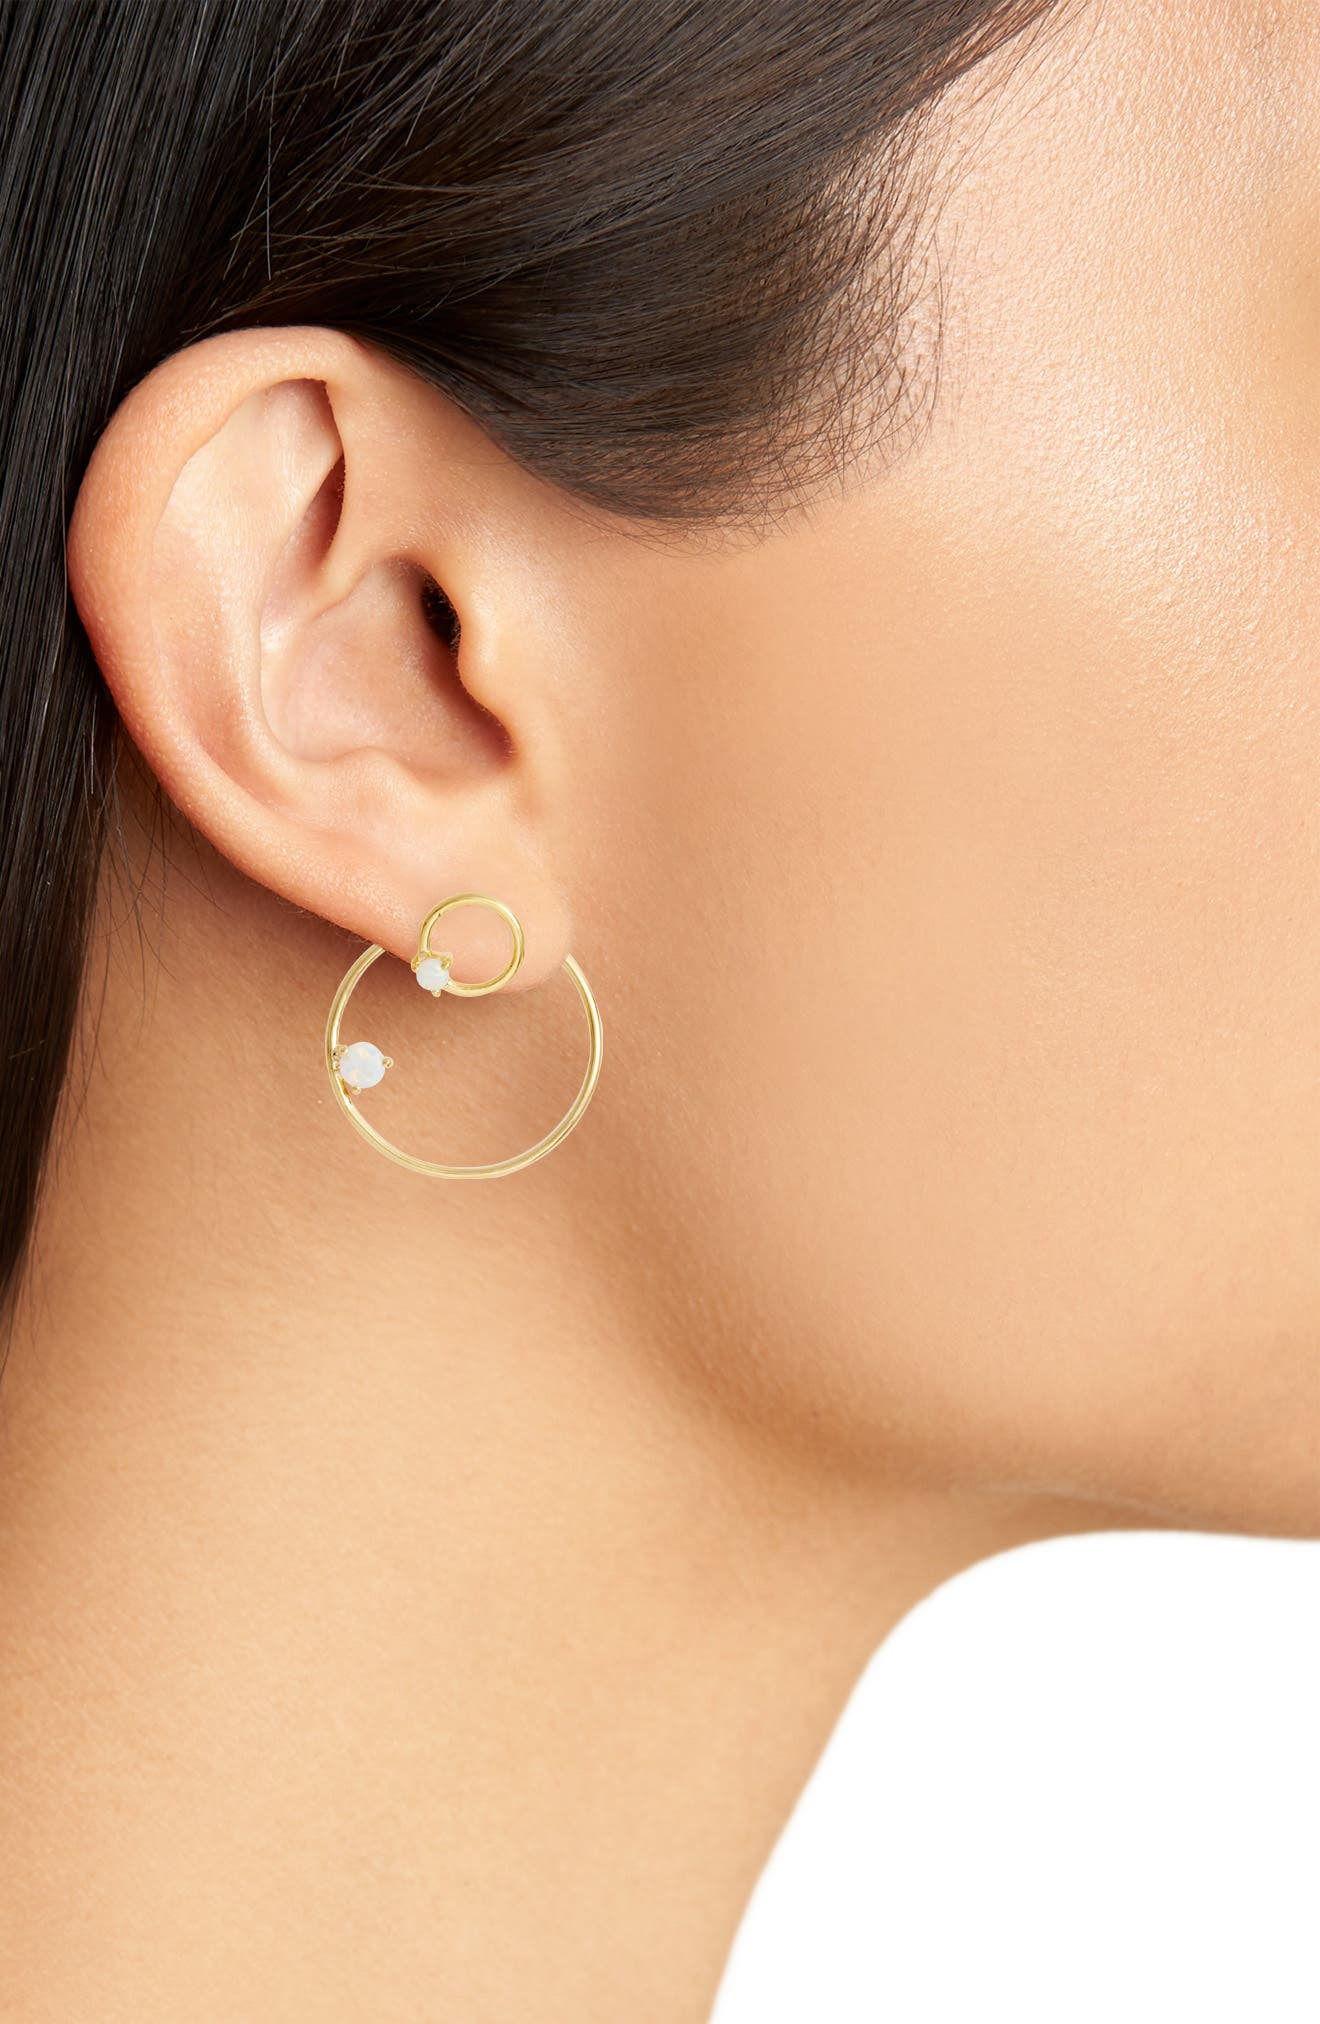 Sydney Double Open Ring Earrings,                             Alternate thumbnail 2, color,                             Gold